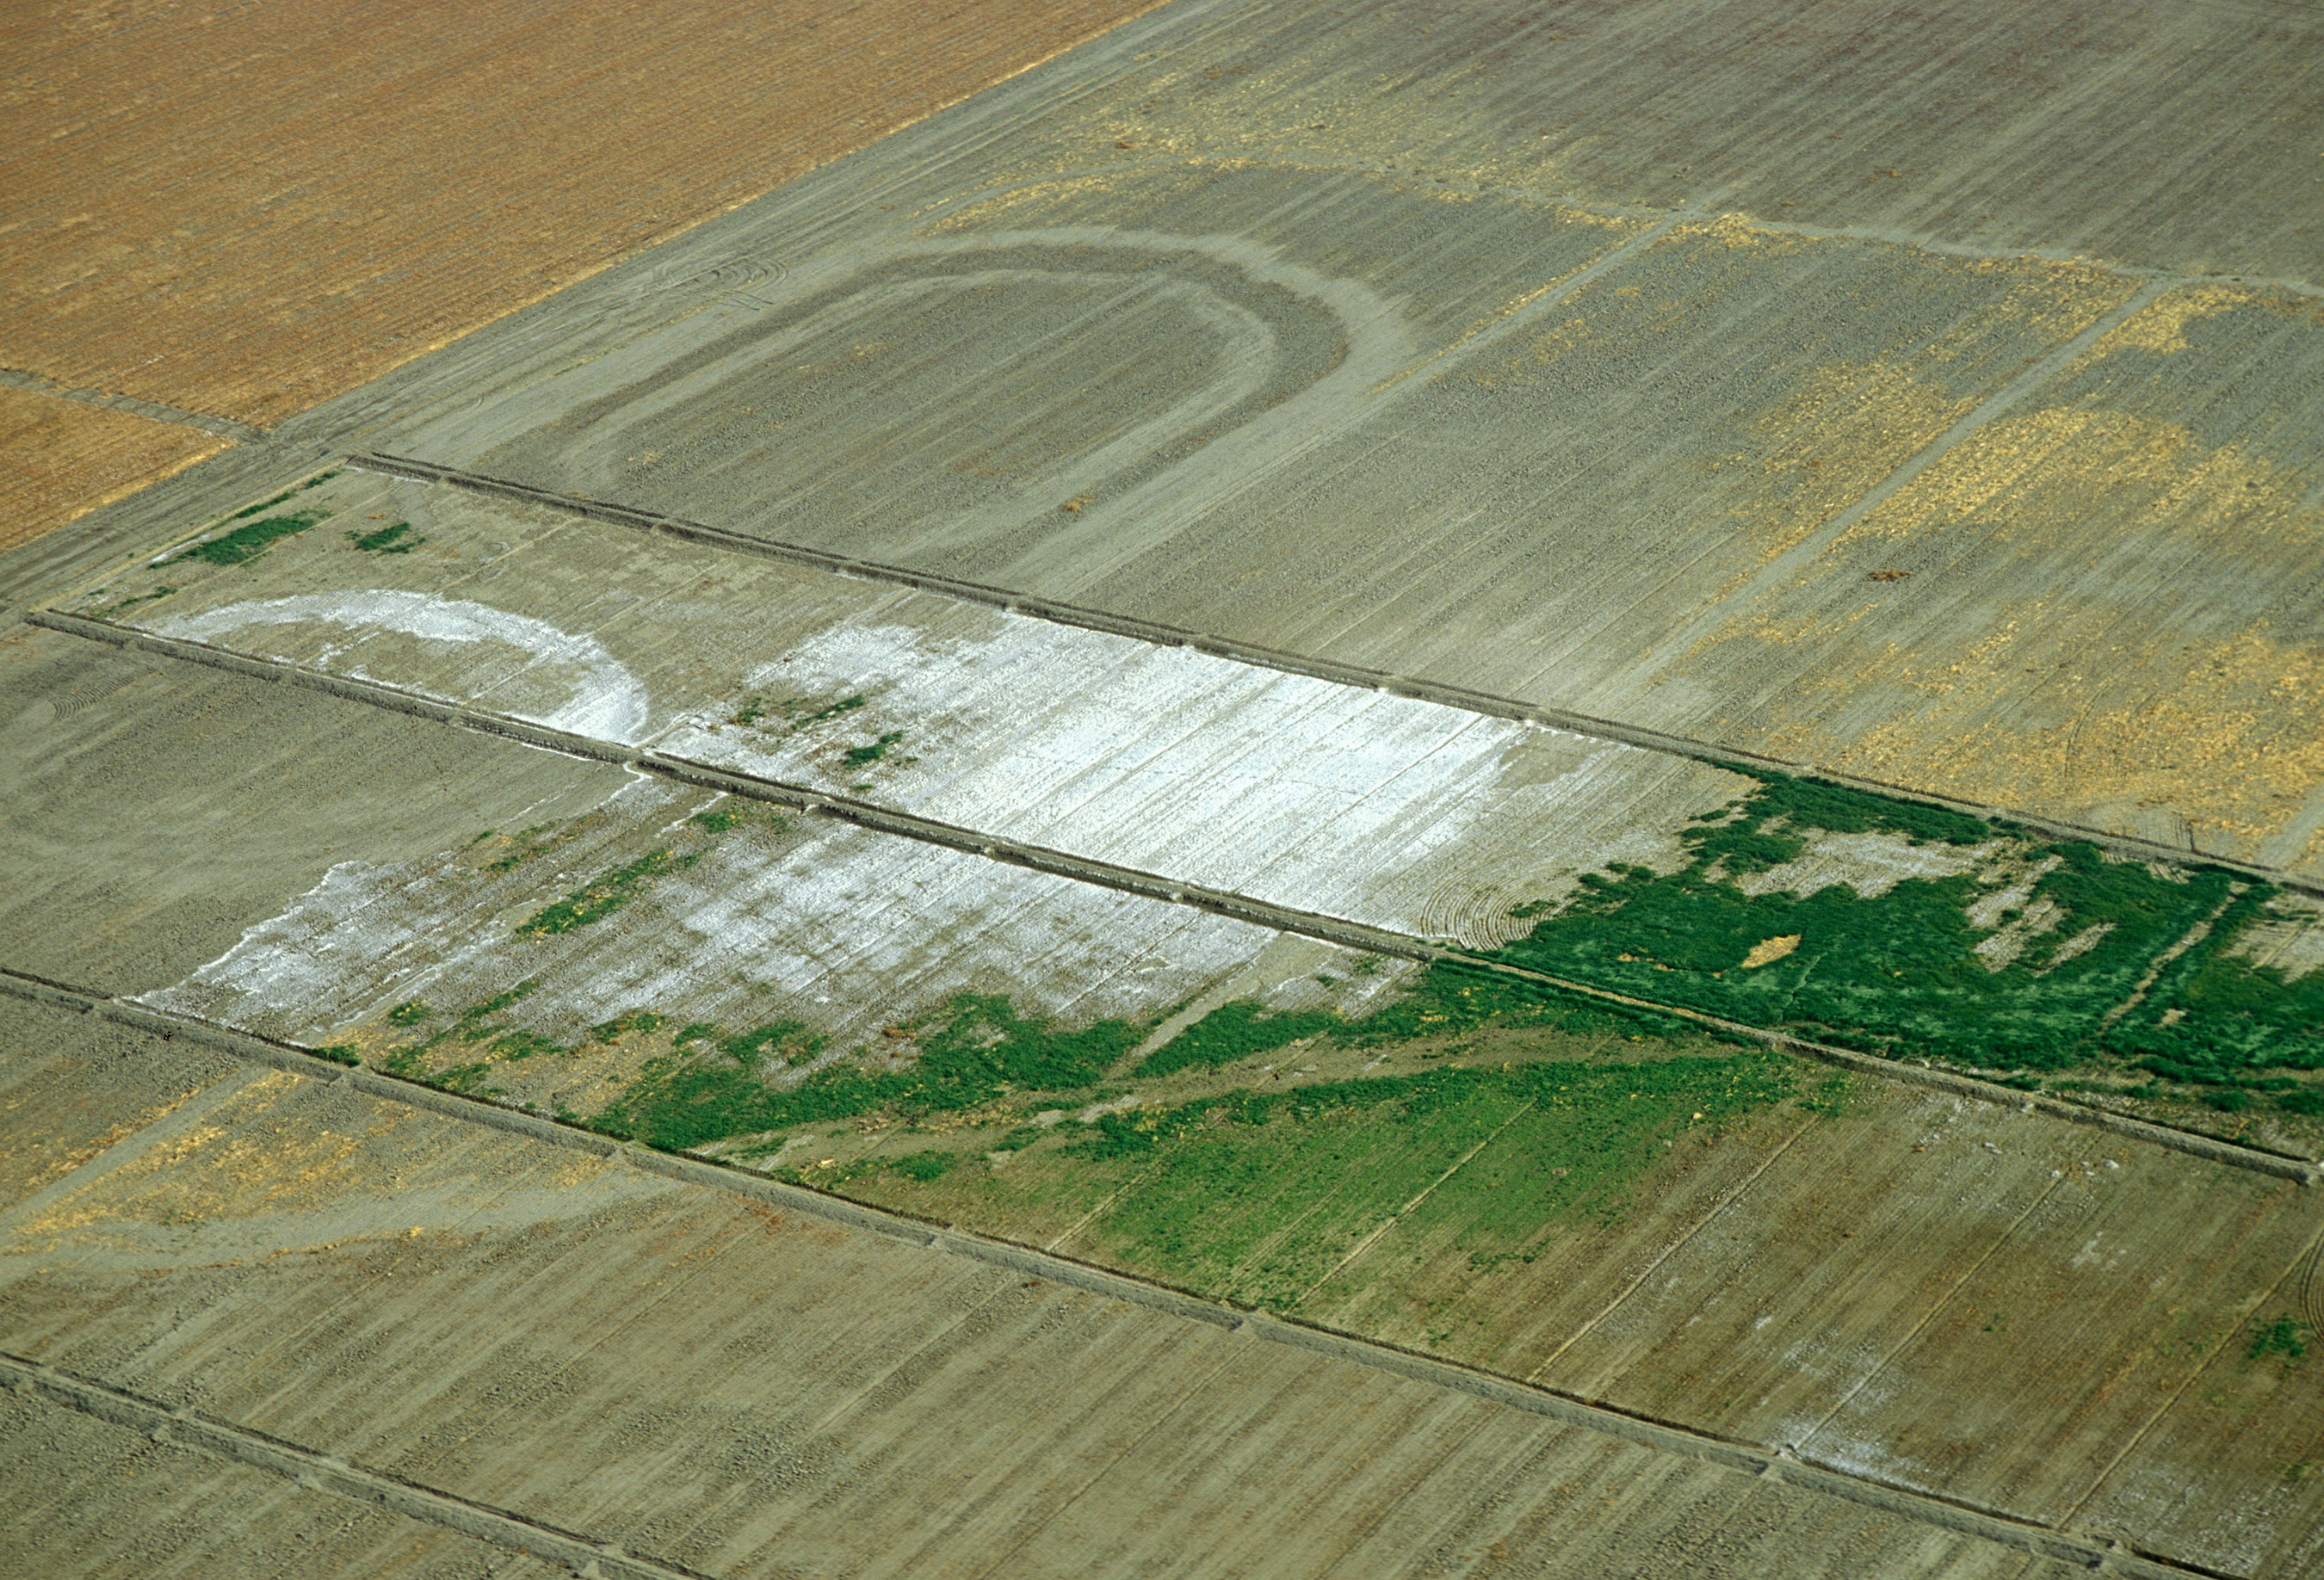 Field View File:aerial View of Fields in